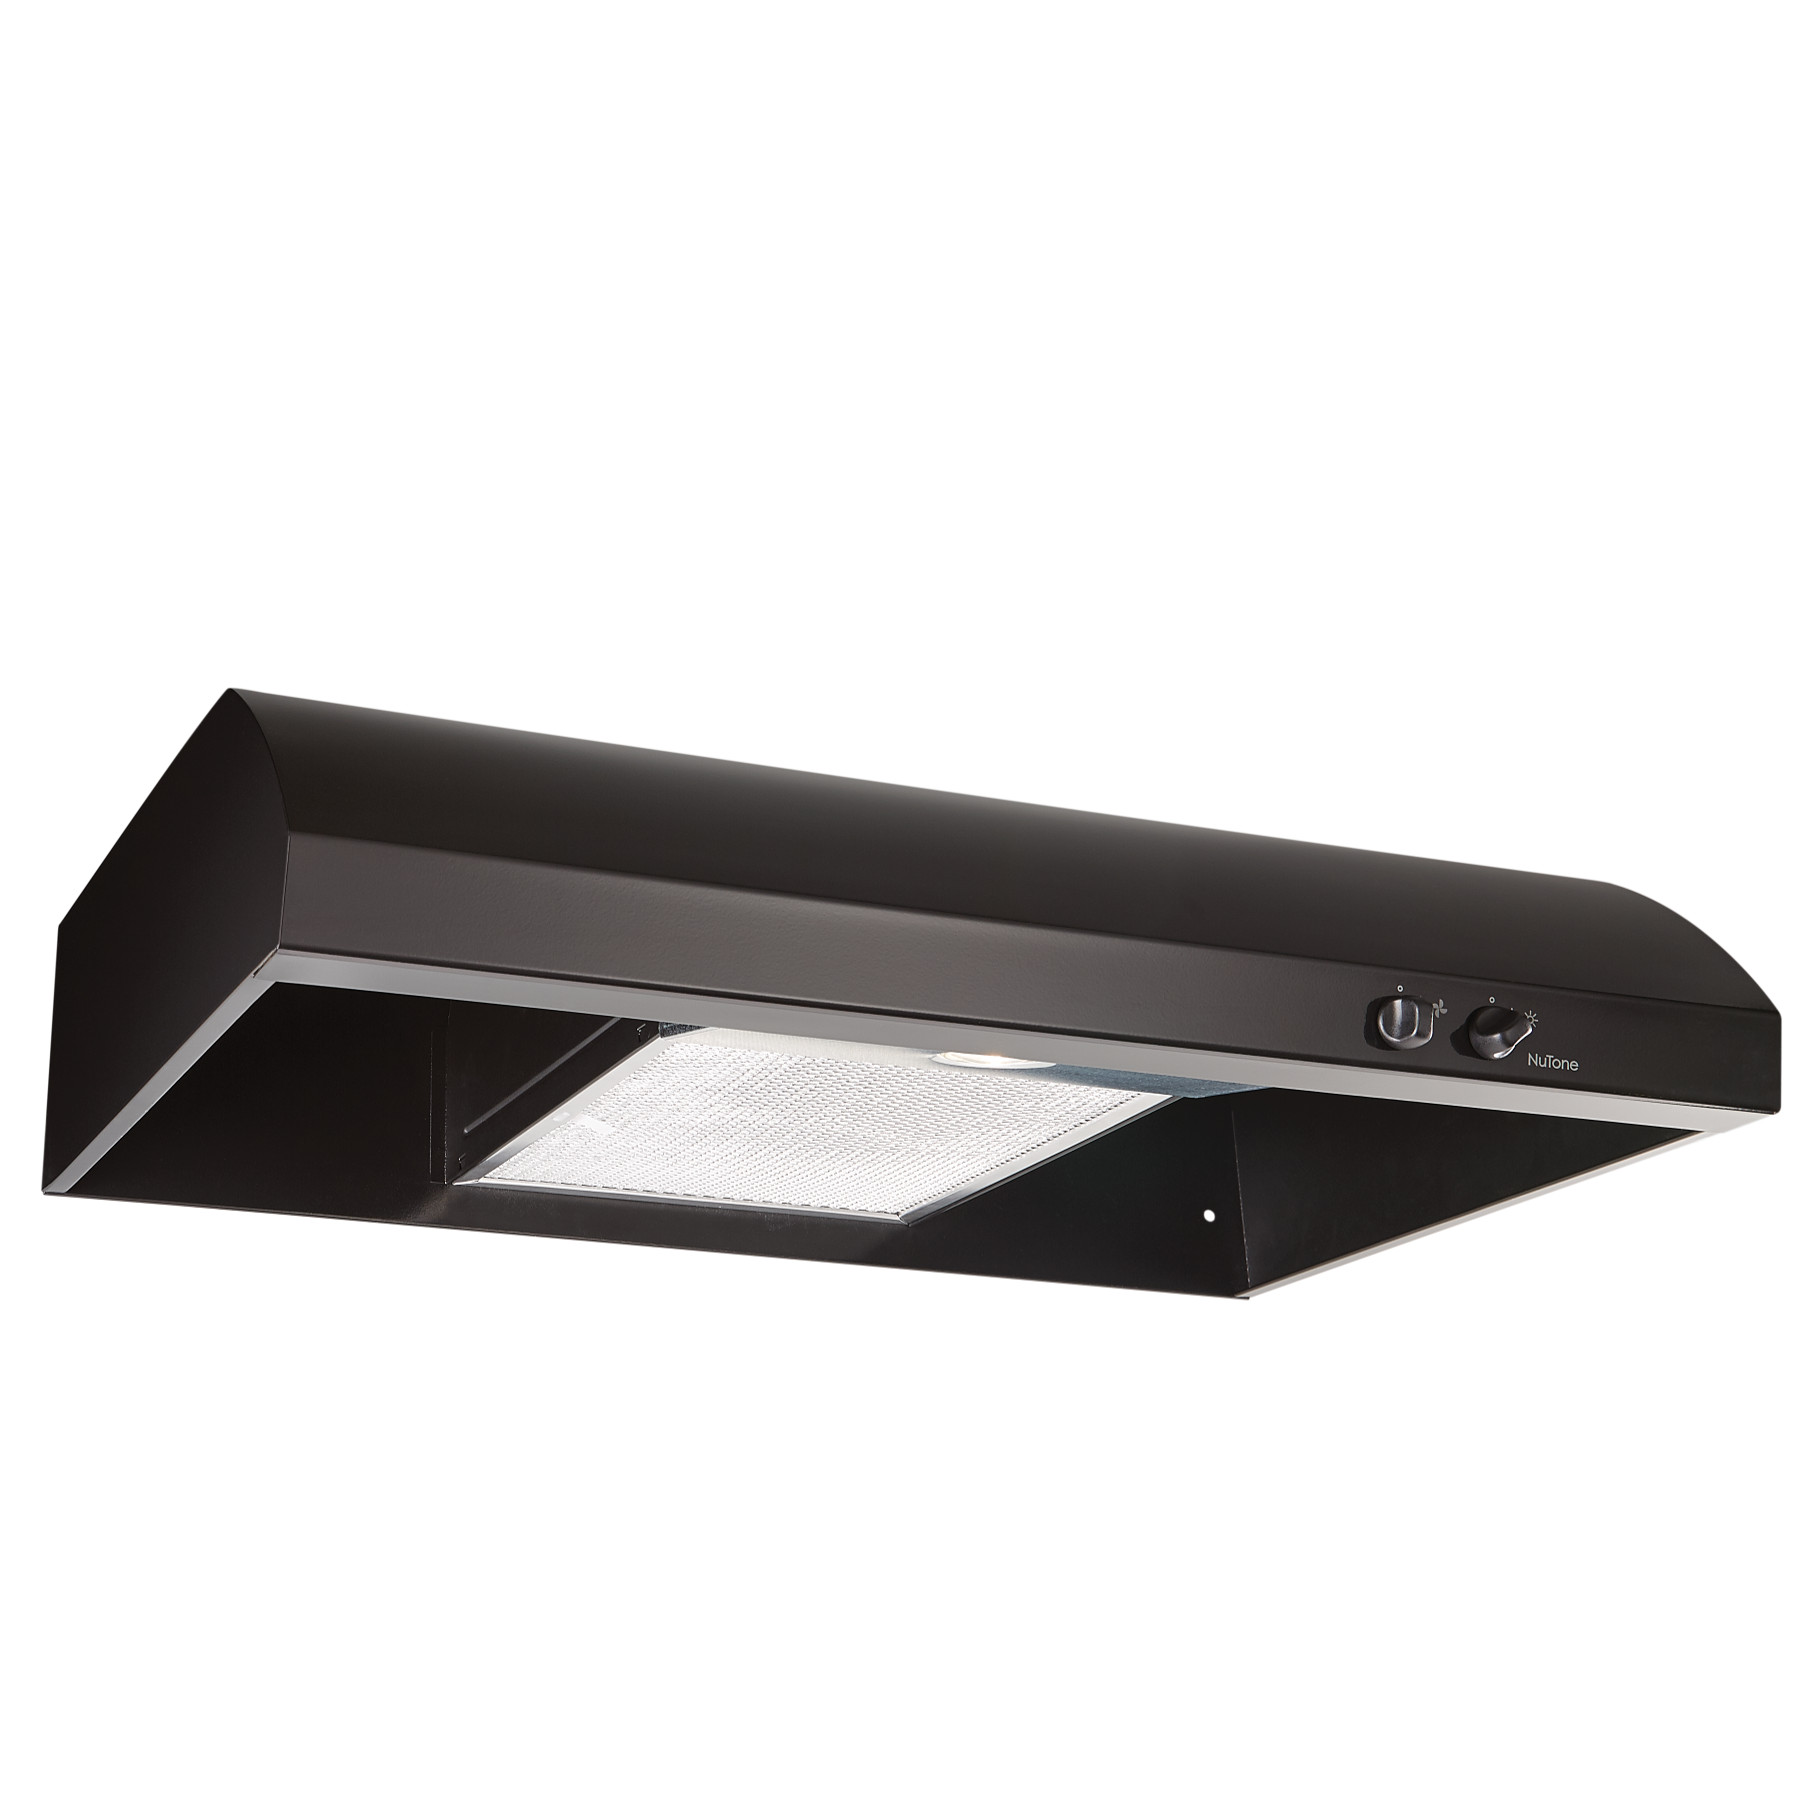 NuTone® 30-Inch 4-Way Convertible Under-Cabinet Range Hood, 220 CFM, Black